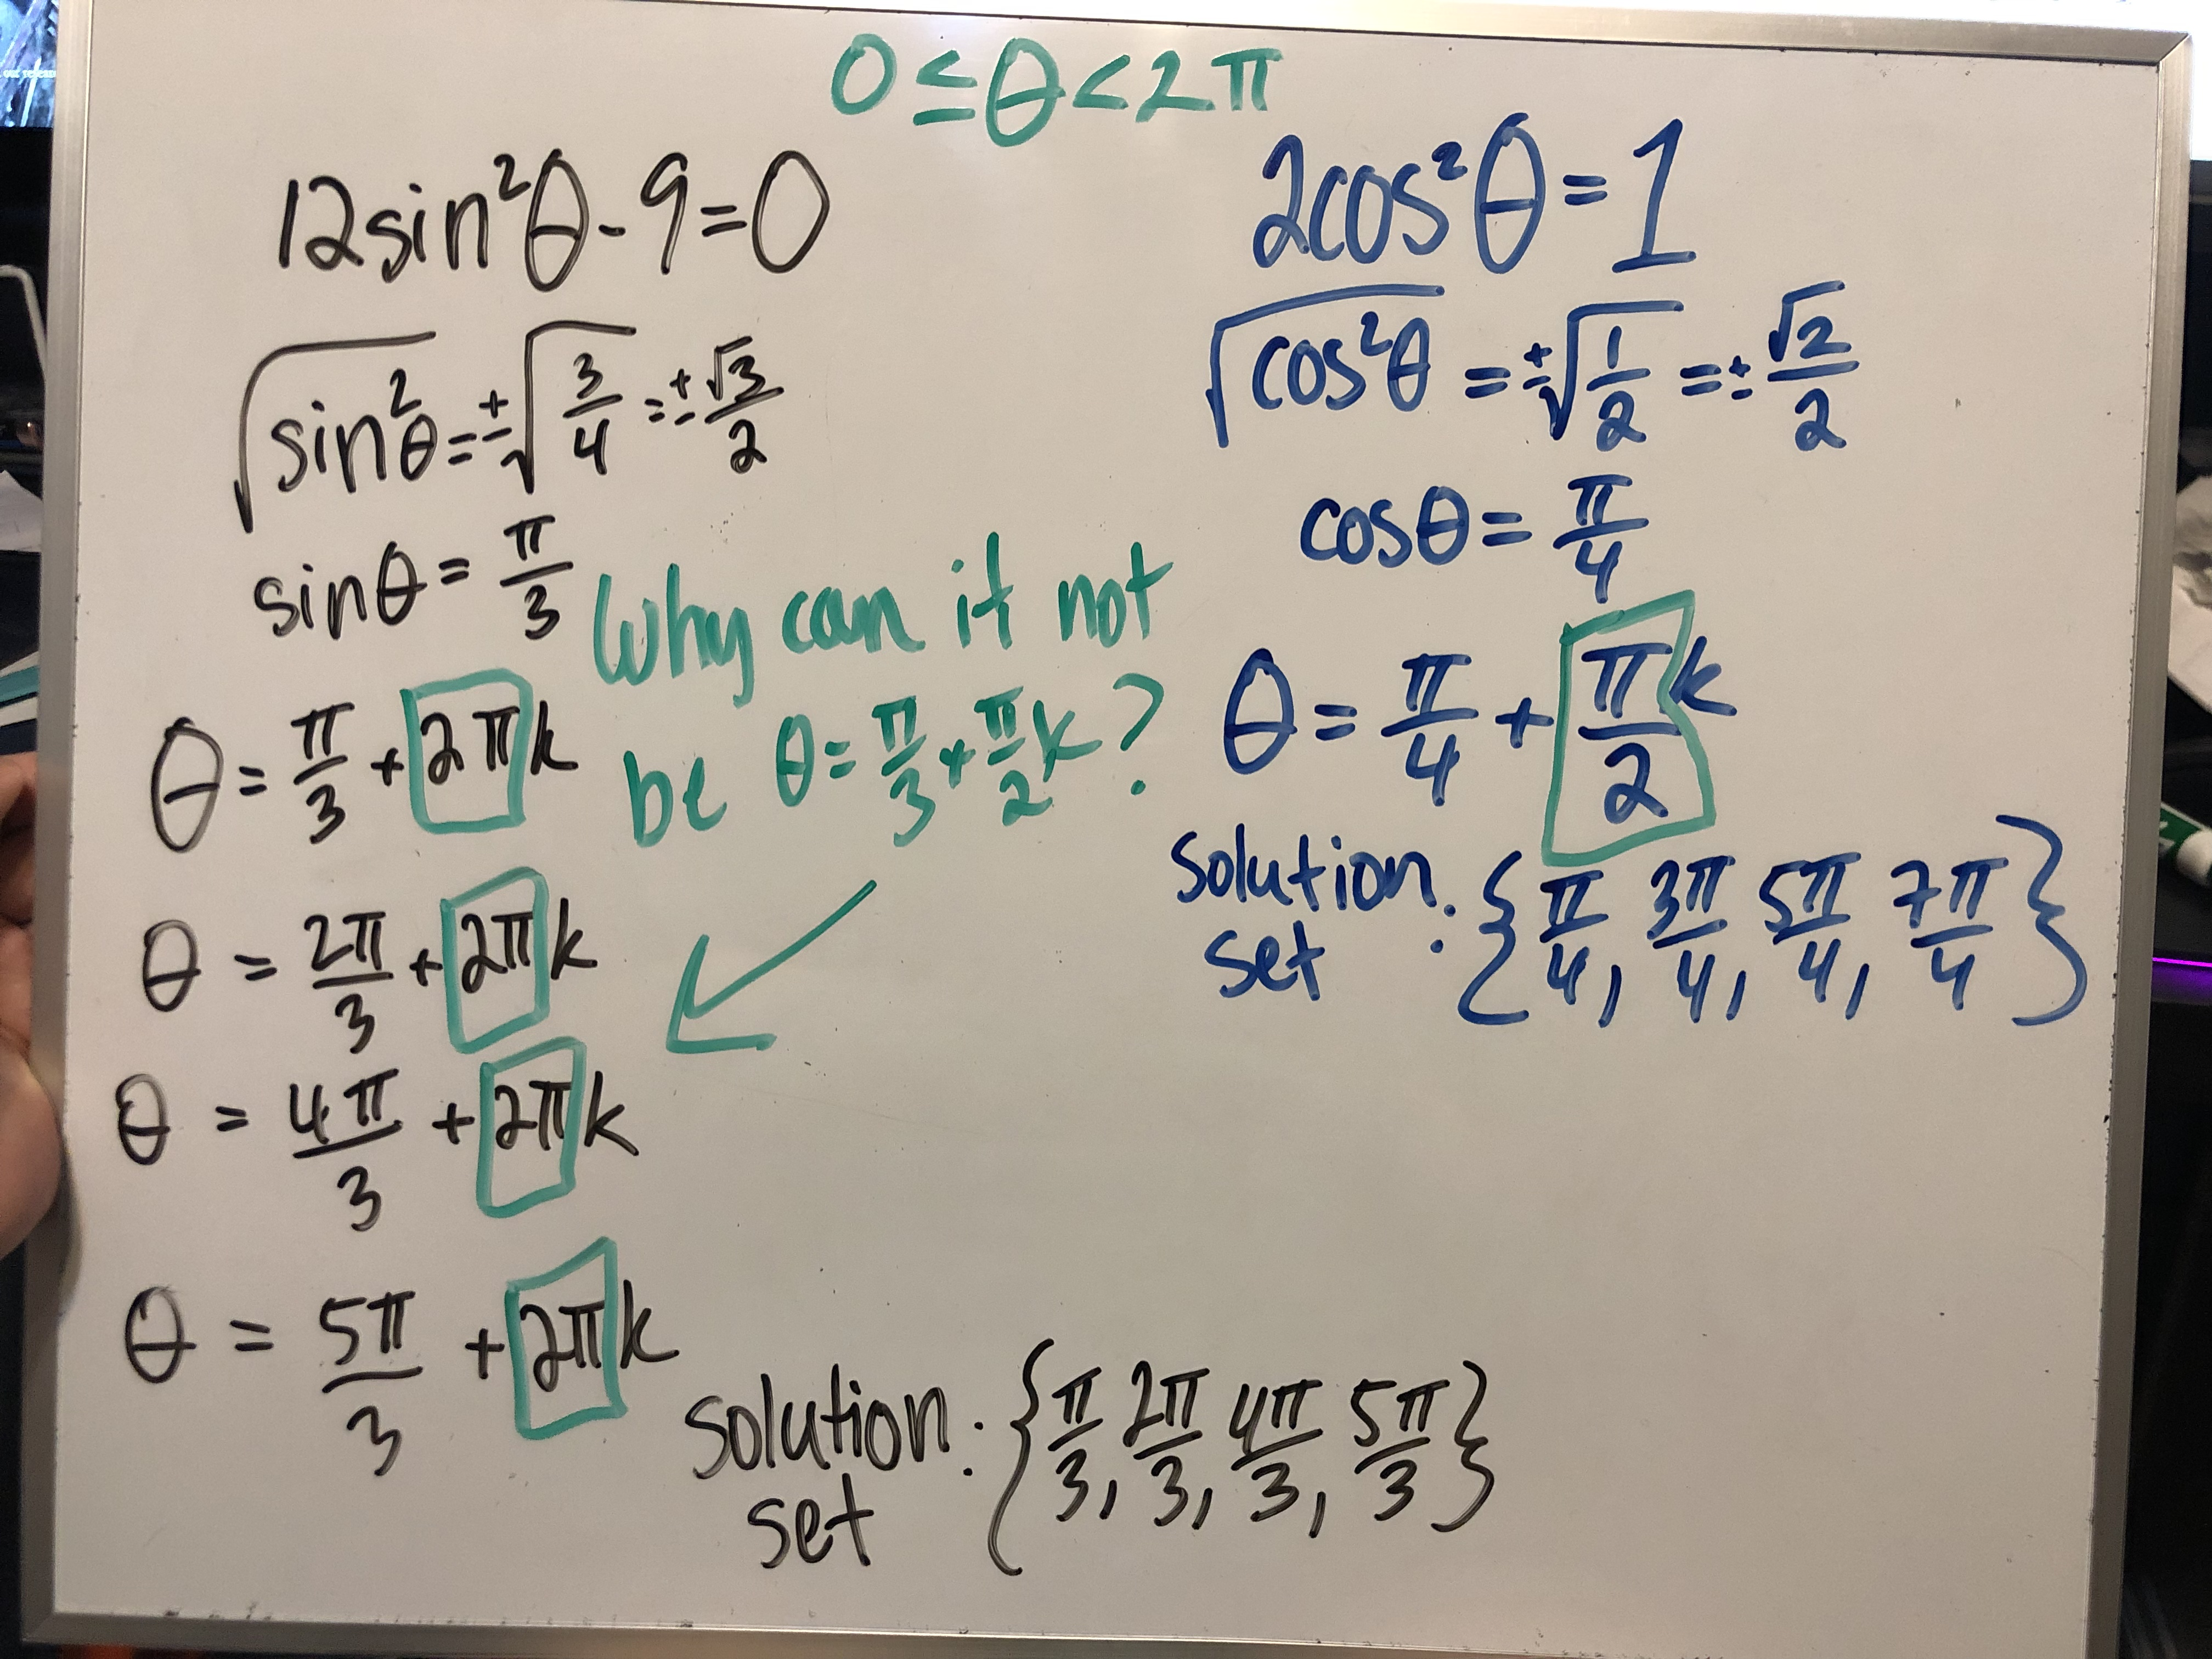 12sin'-9-0 Jcos-1 COS= cose sinewhy can it not COSE= Solution Set 3 t S 4T 3 =51 +k Solution Set .t